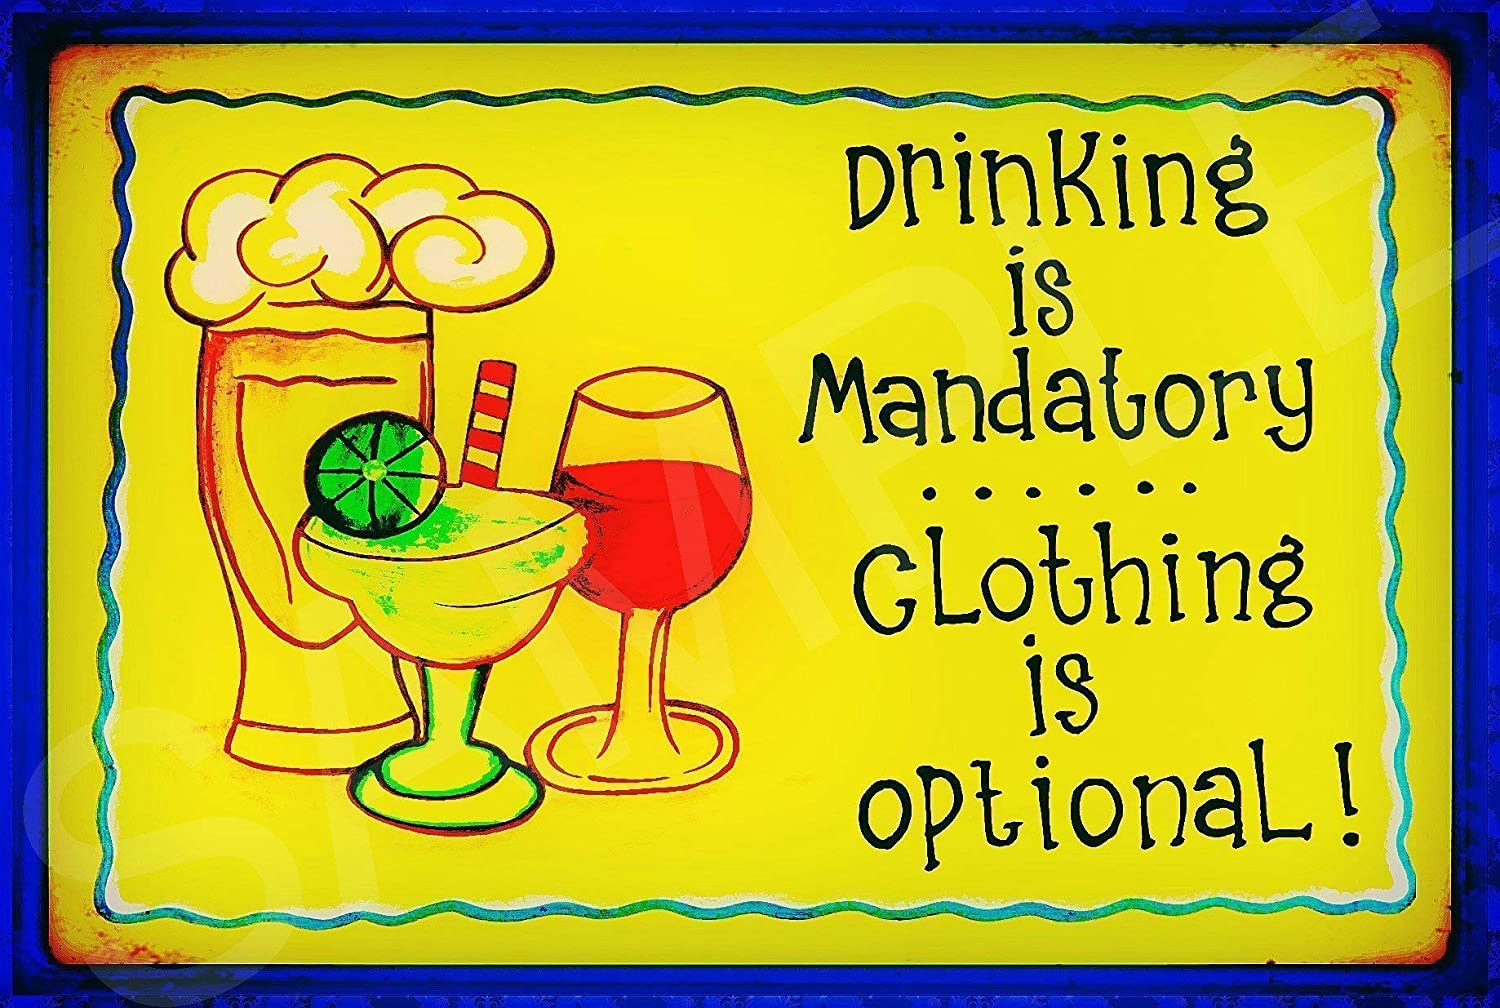 Funny Bar Sign Drinking Mandatory Sign 8x12 Made In USA All Weather Metal Lounge Welcome Pool Hot Tub Happy Hour Island D/écor Margaritaville Nude Beach